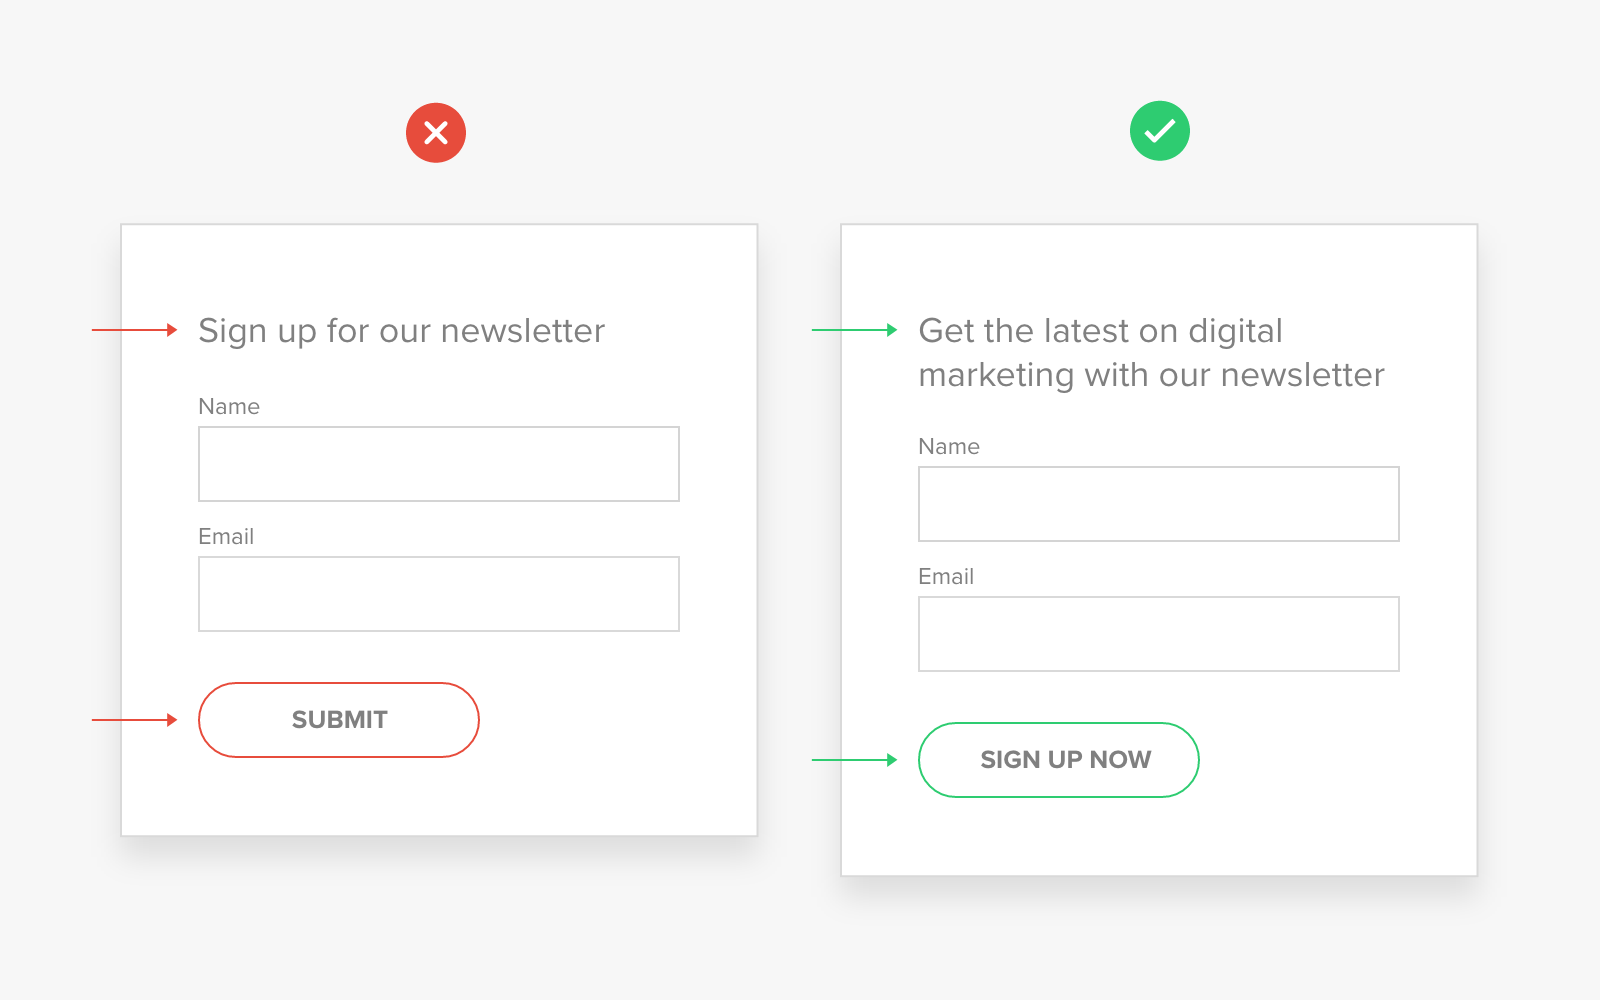 Form best practices: Use descriptive titles and buttons